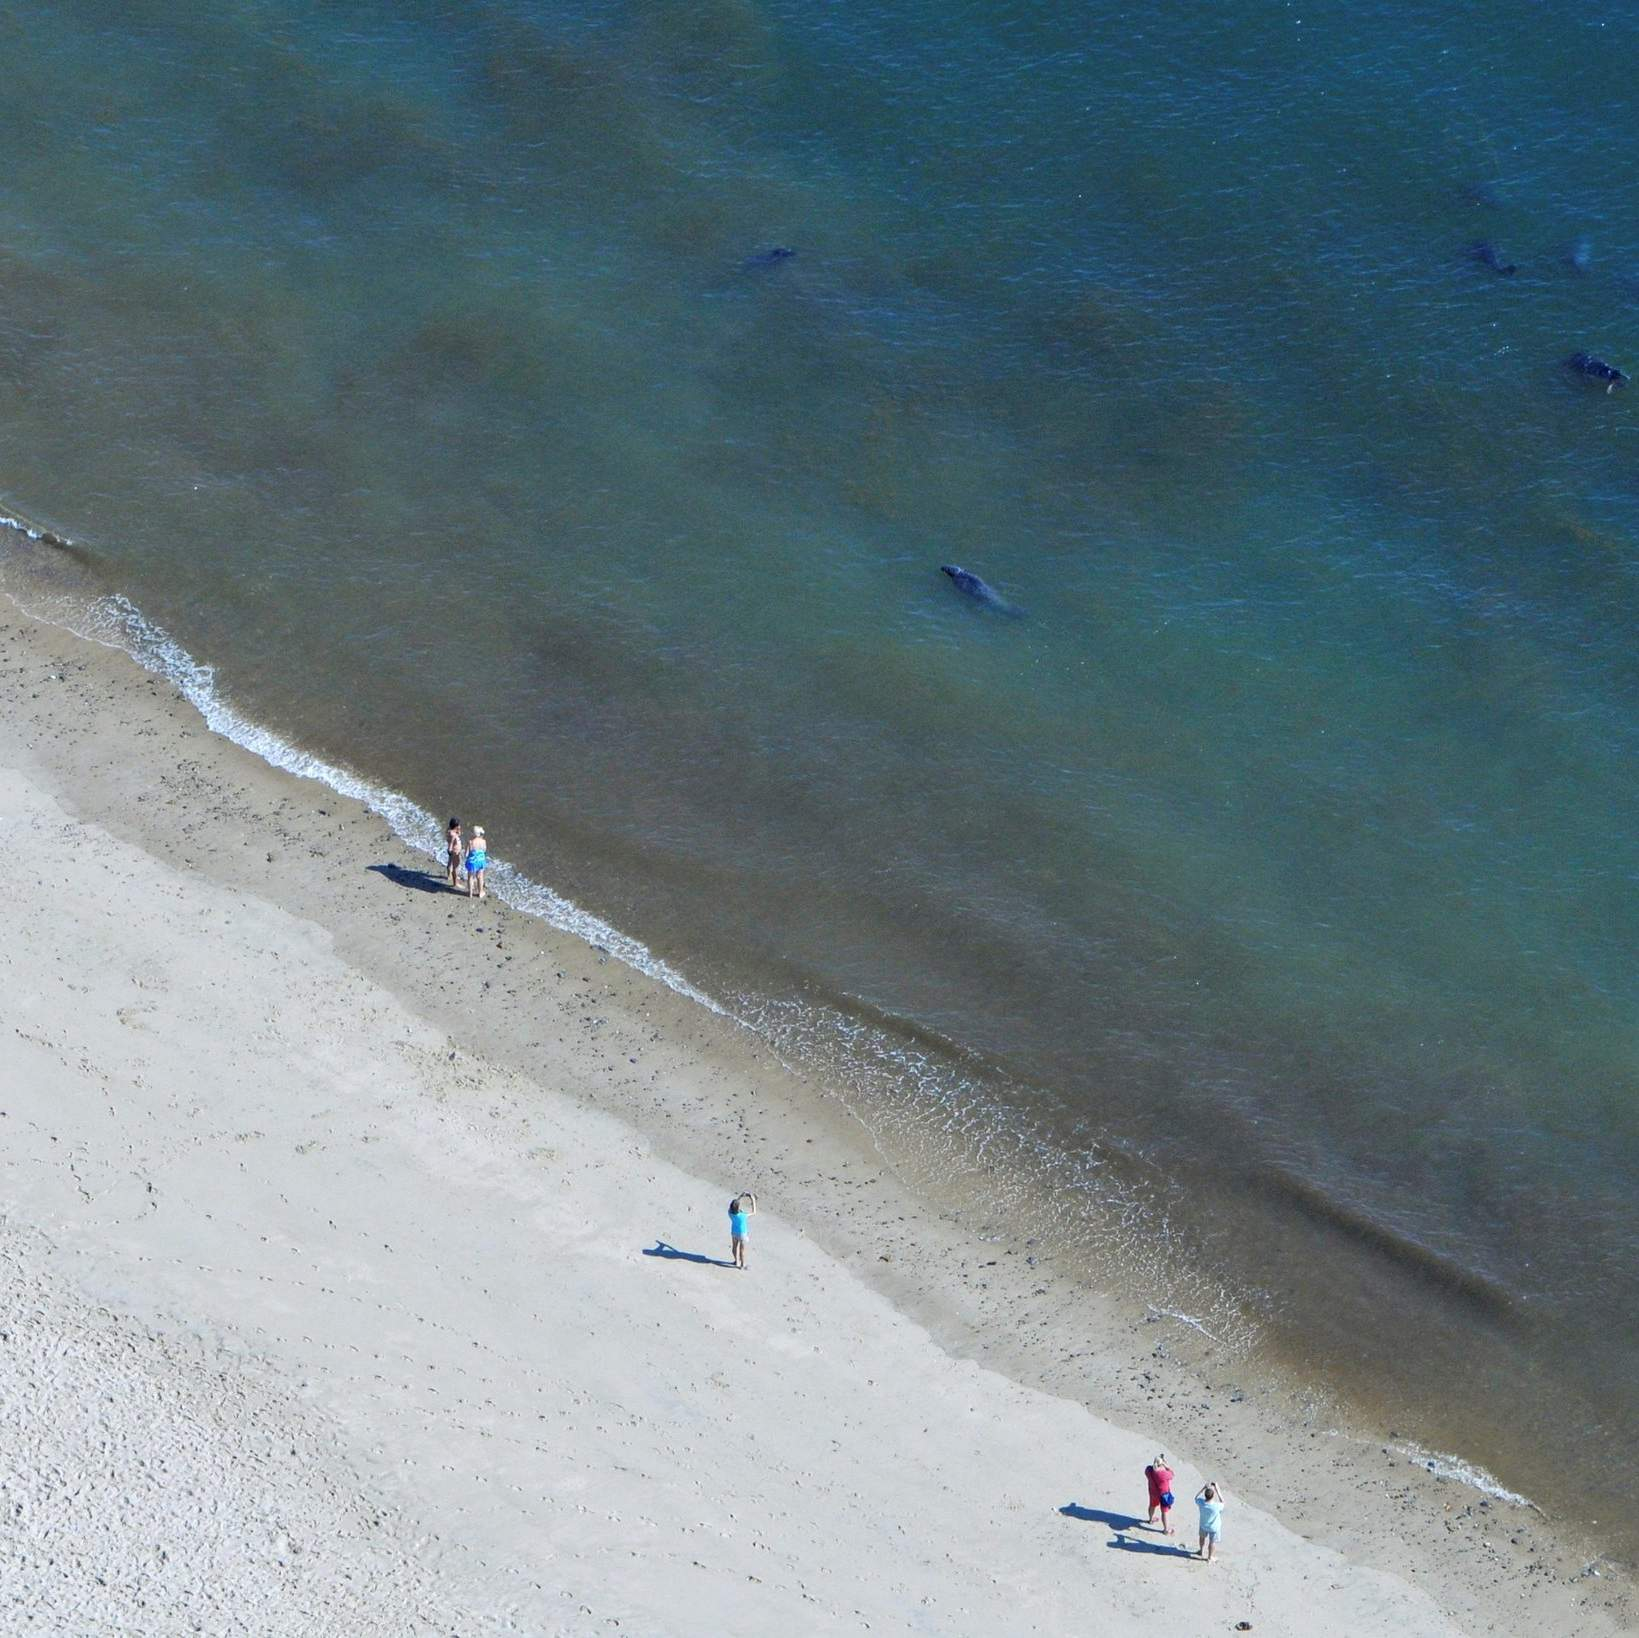 Sound barrier to chase seals, prevent shark attacks debated